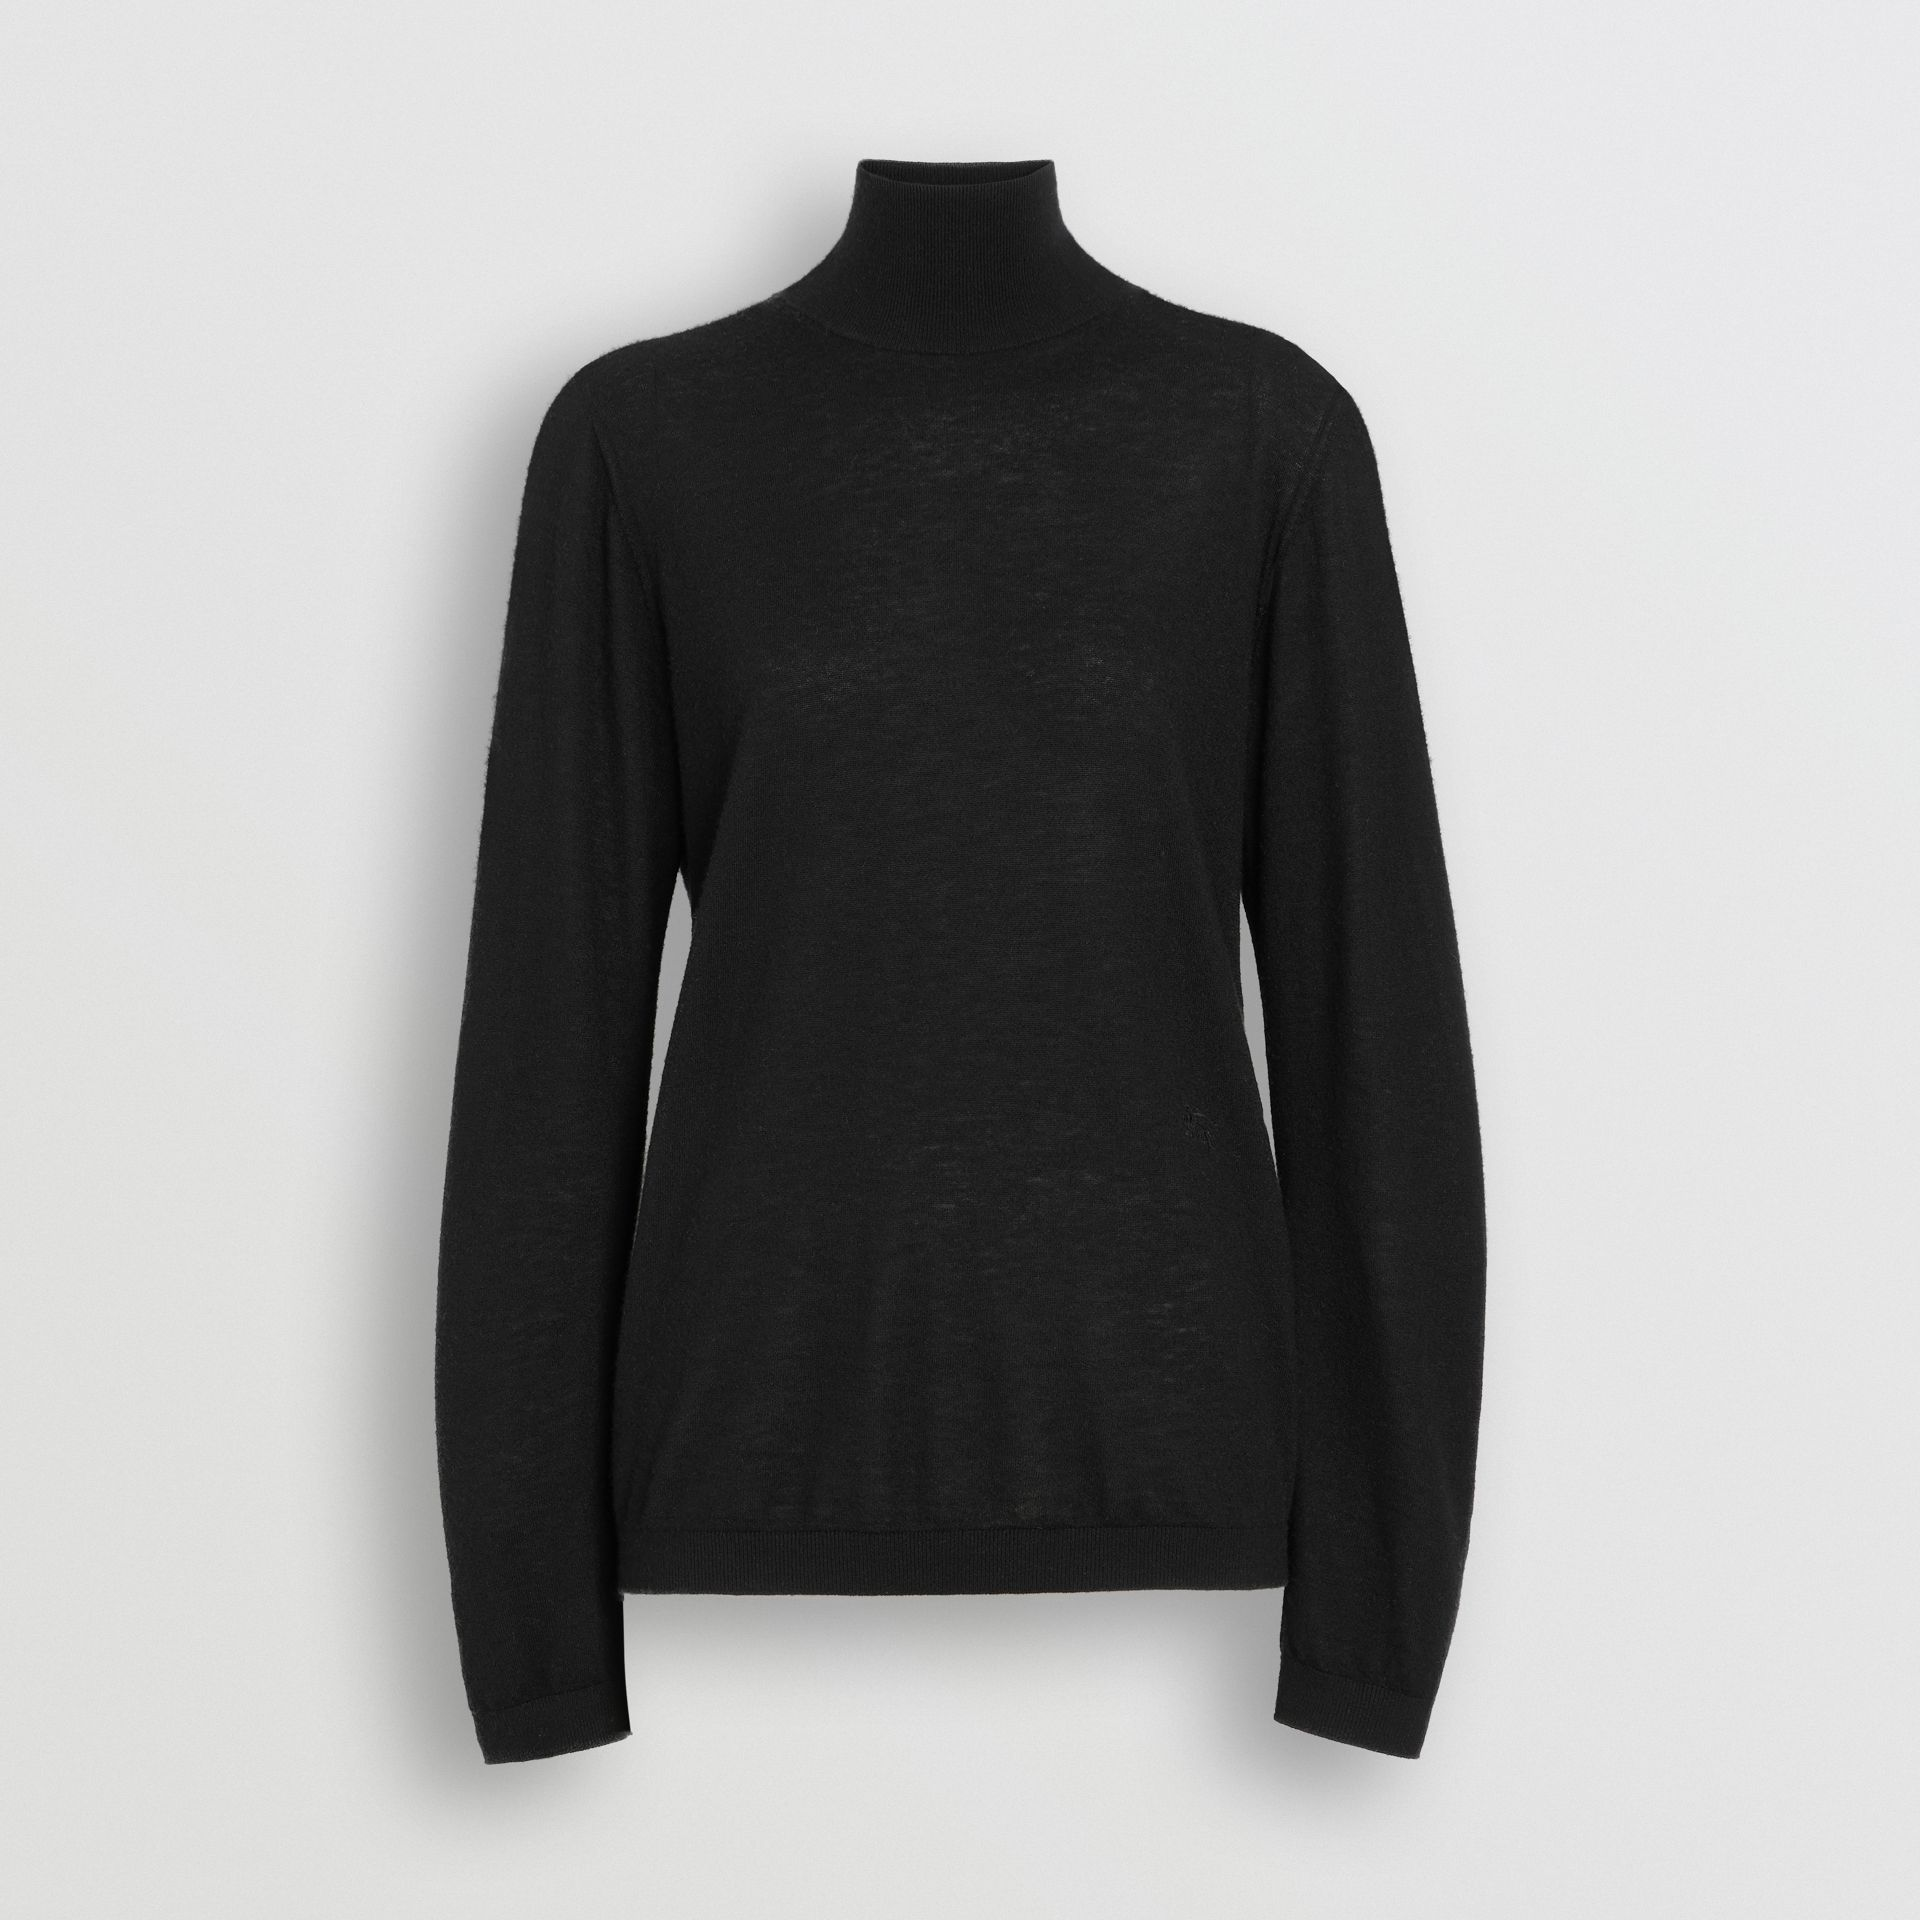 Cashmere Turtleneck Sweater in Black - Women | Burberry - gallery image 3